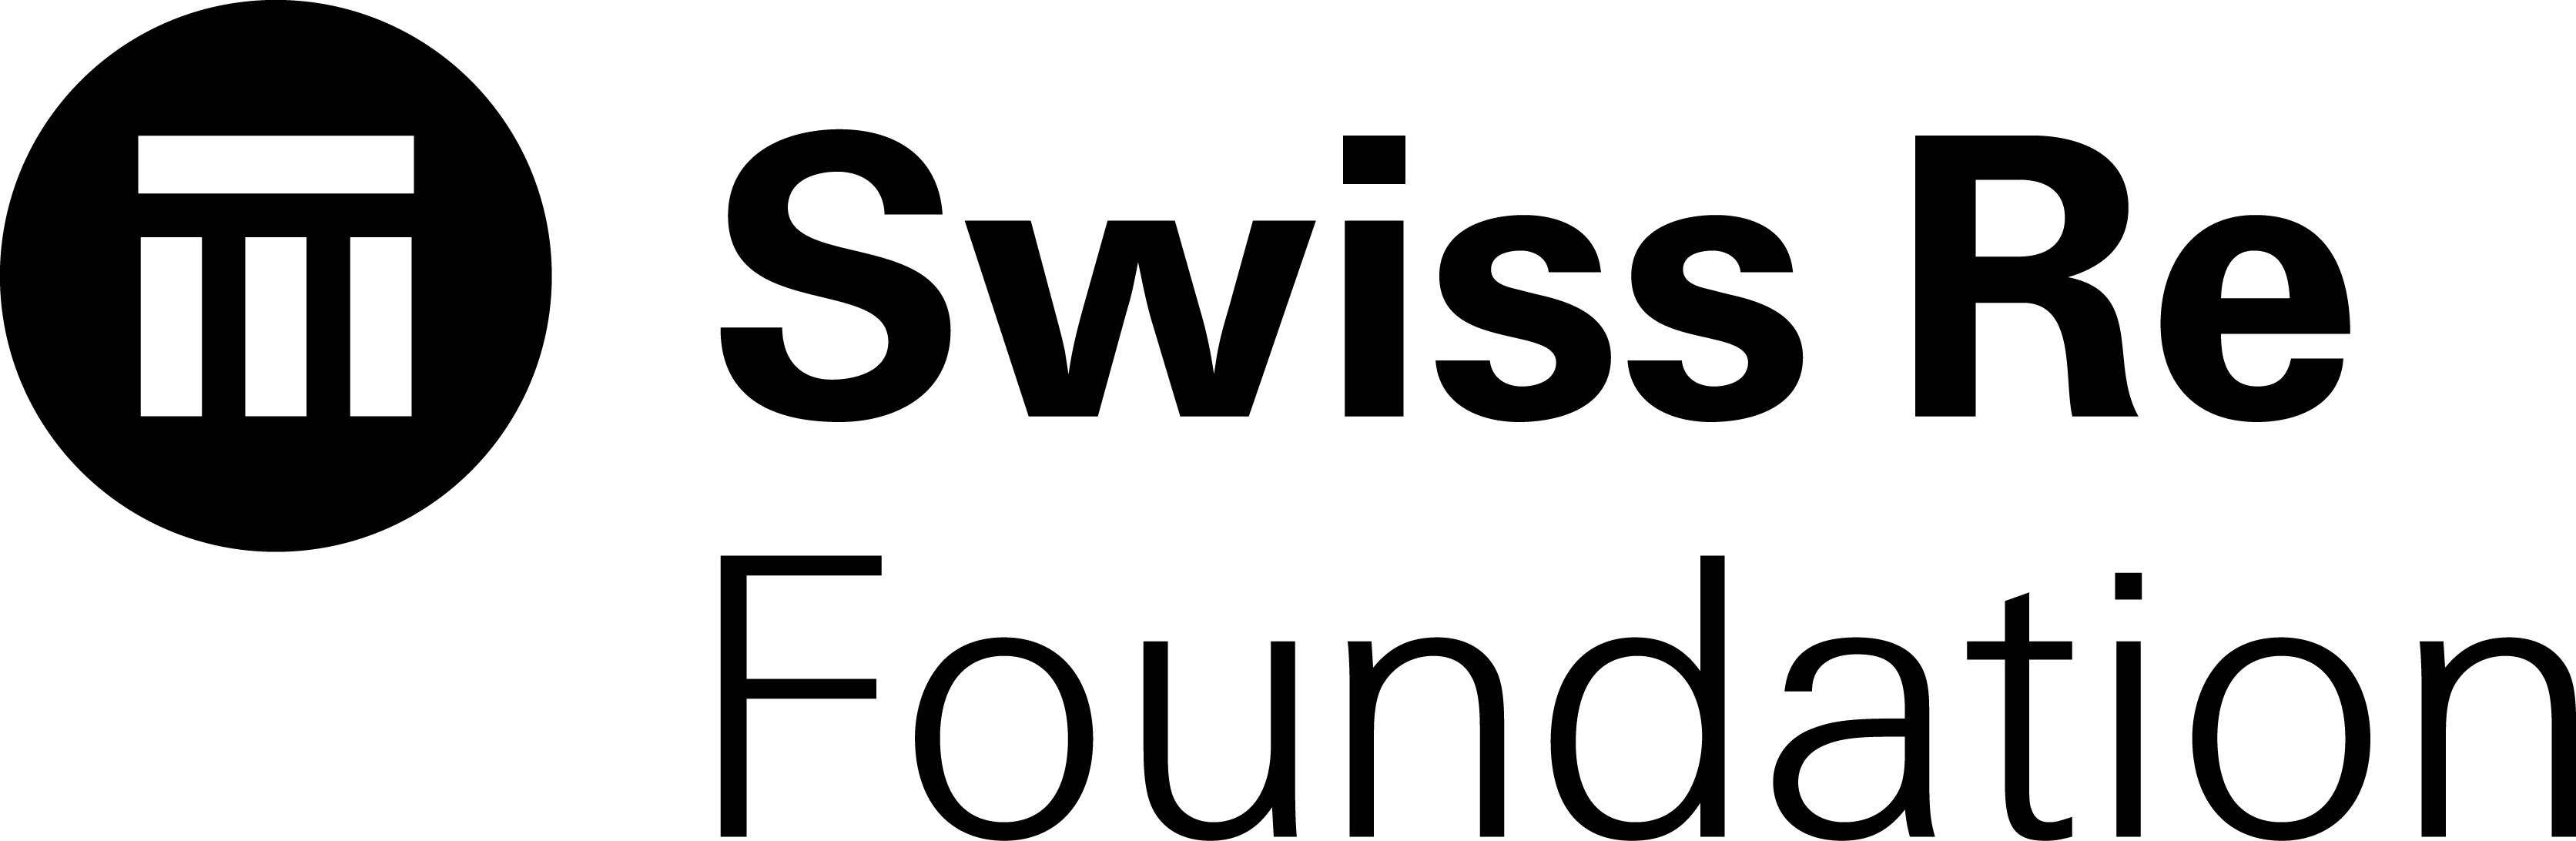 Picture. Swiss Re Foundation - Swiss Re PNG